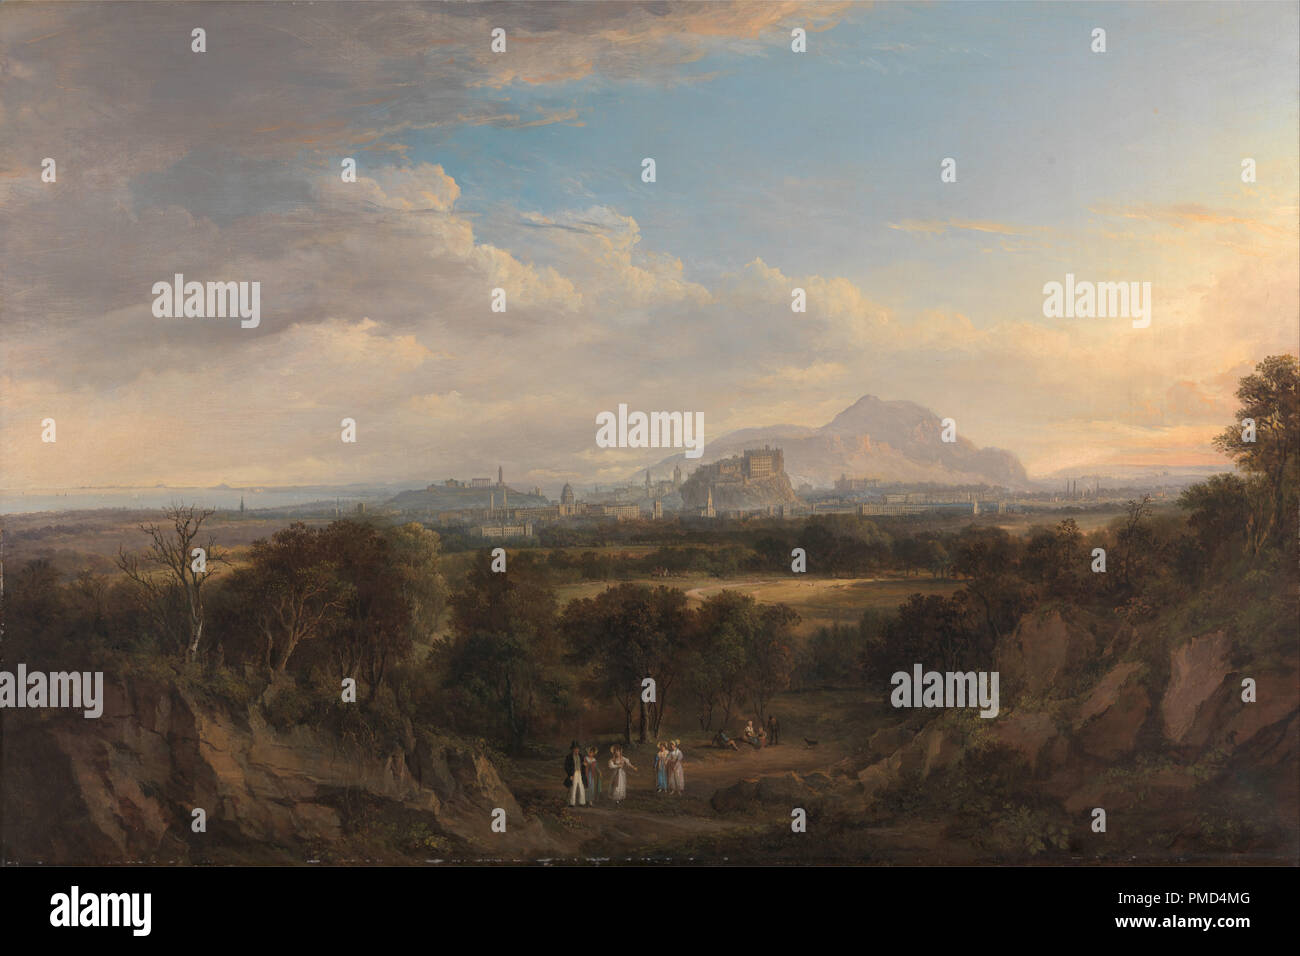 A View of Edinburgh from the West. Date/Period: 1822 to 1826. Painting. Oil on canvas. Height: 616 mm (24.25 in); Width: 921 mm (36.25 in). Author: Alexander Nasmyth. Stock Photo